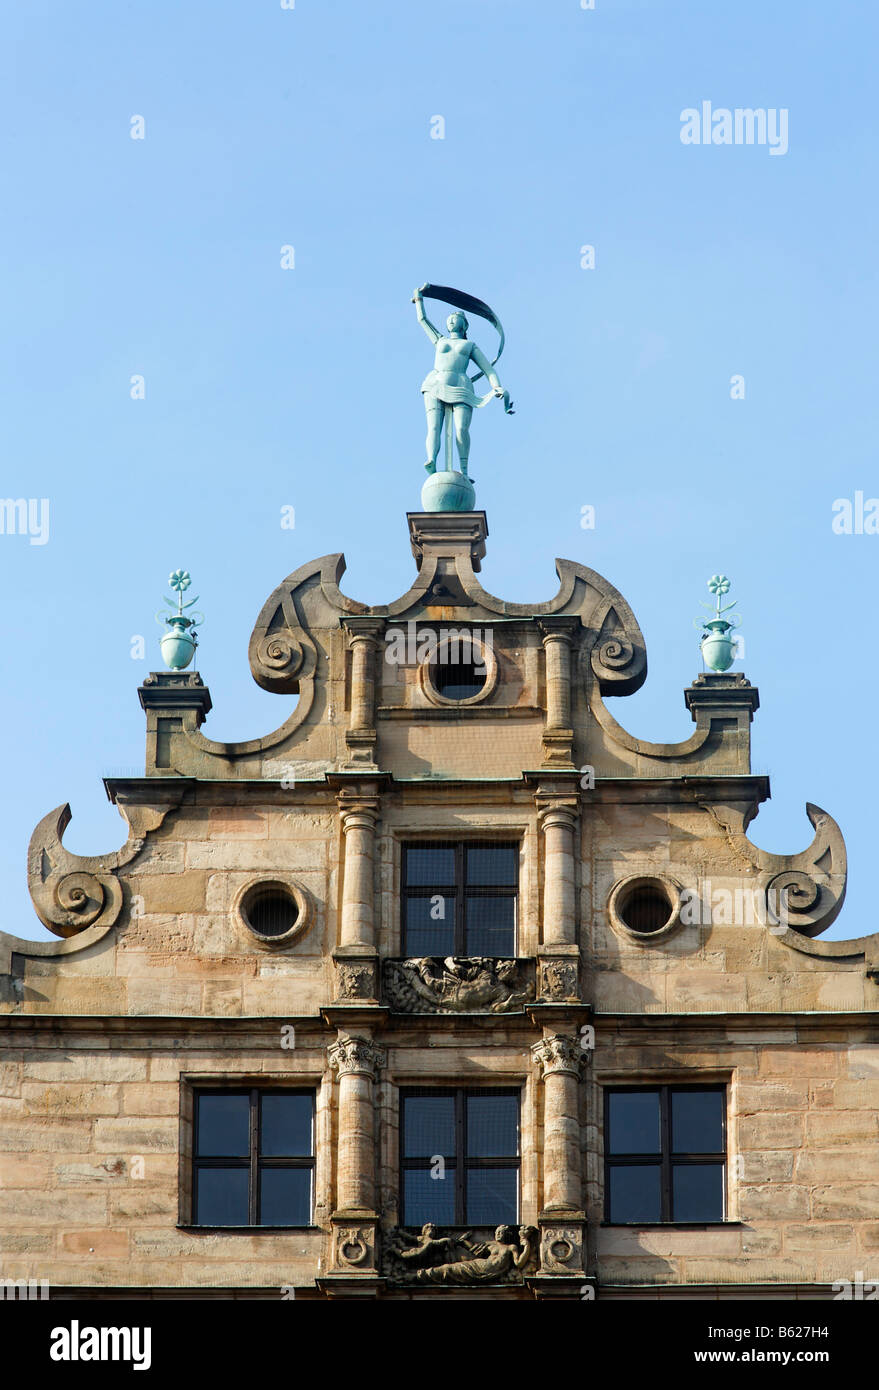 Figure of Fortuna, Fembo house, gable, late renaissance, historic city centre, Nuremberg, Franconia, Bavaria, Germany, - Stock Image